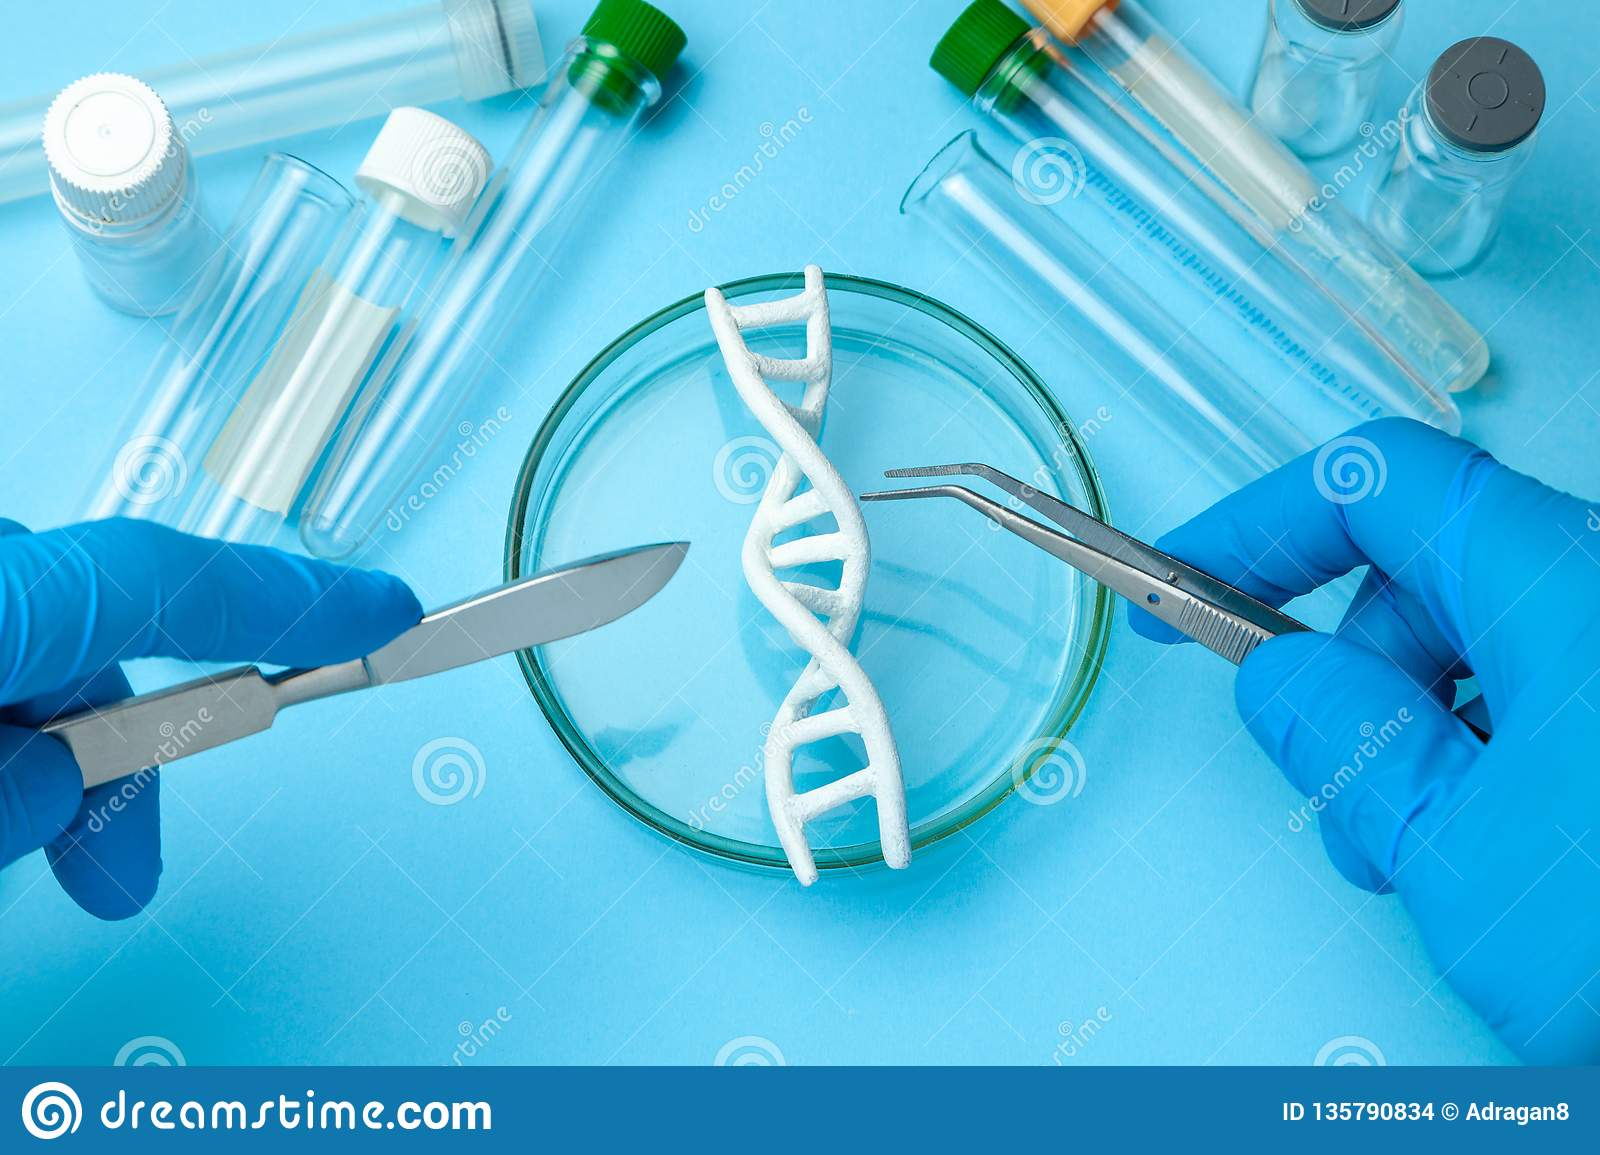 DNA helix research. Concept of genetic experiments on human biological code. Medical instrument scalpel and forceps and test tubes